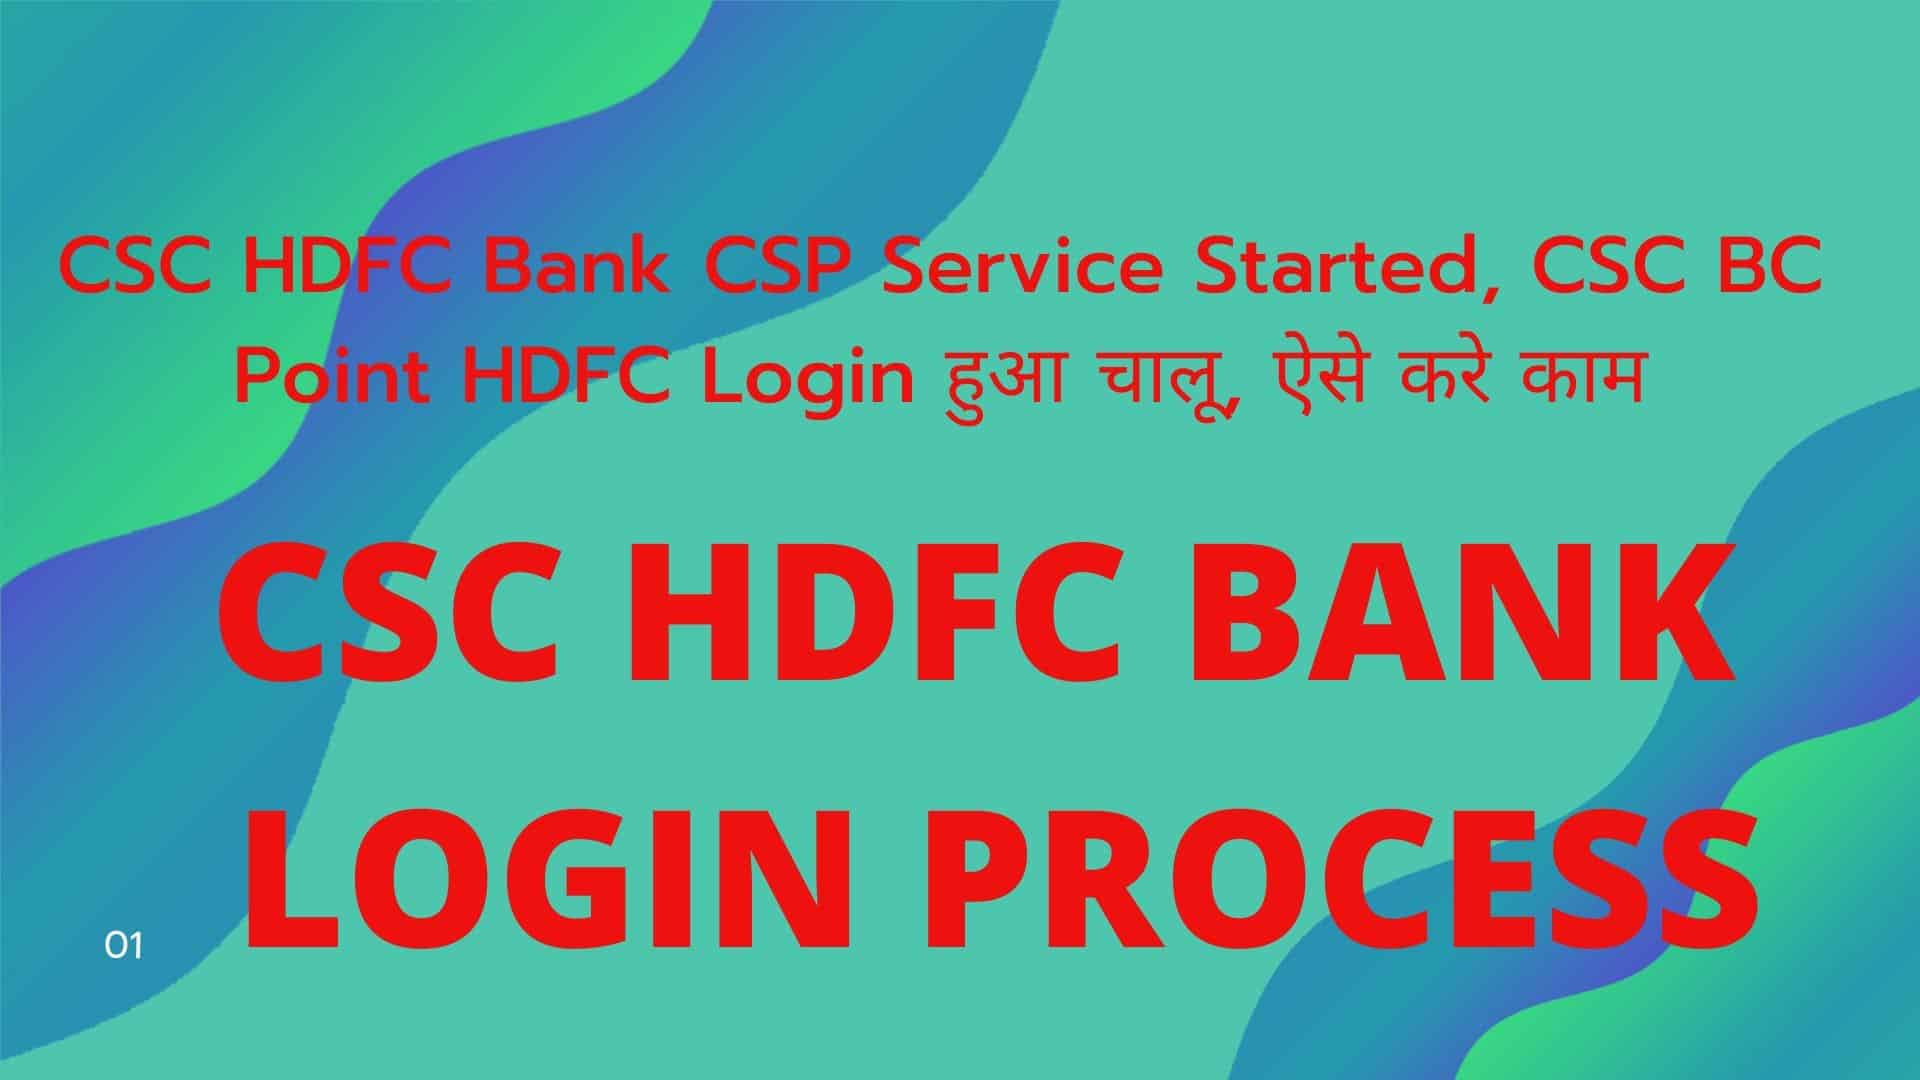 CSC HDFC BANK LOGIN PROCESS